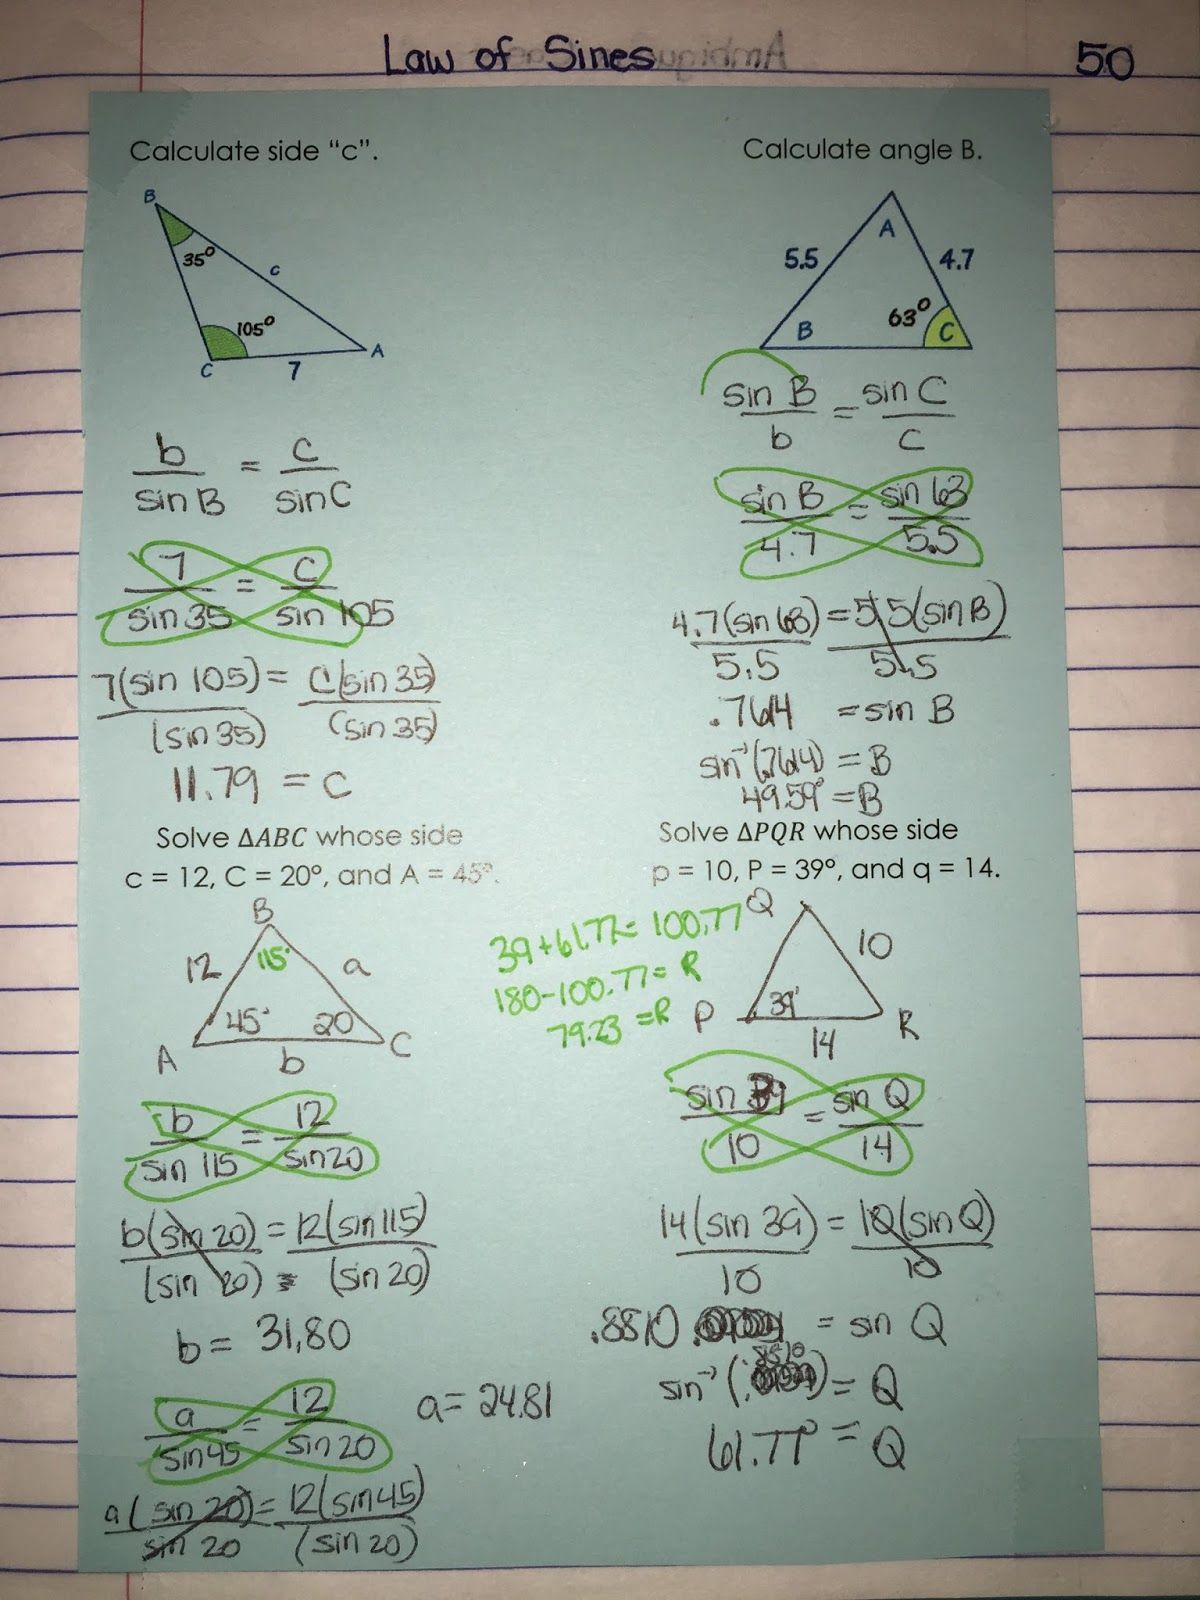 Unit 5 Law Of Sines And Cosines Pg 49 50 Started This Unit With The Investigations By Illumination That Develop Law Of Sines Interactive Notebooks The Unit